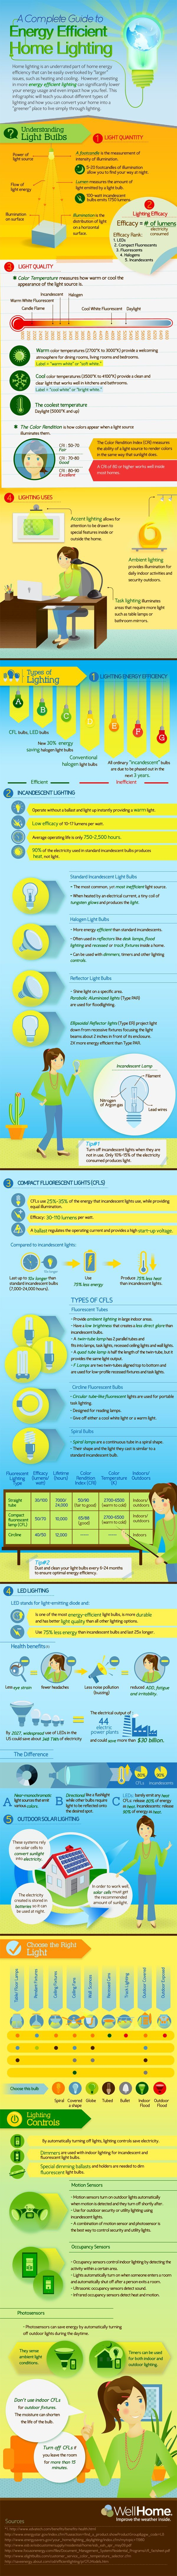 25 Best Ideas About Energy Efficient Homes On Pinterest Uses Of Solar Energy Cost Of Moving House And Energy Efficiency